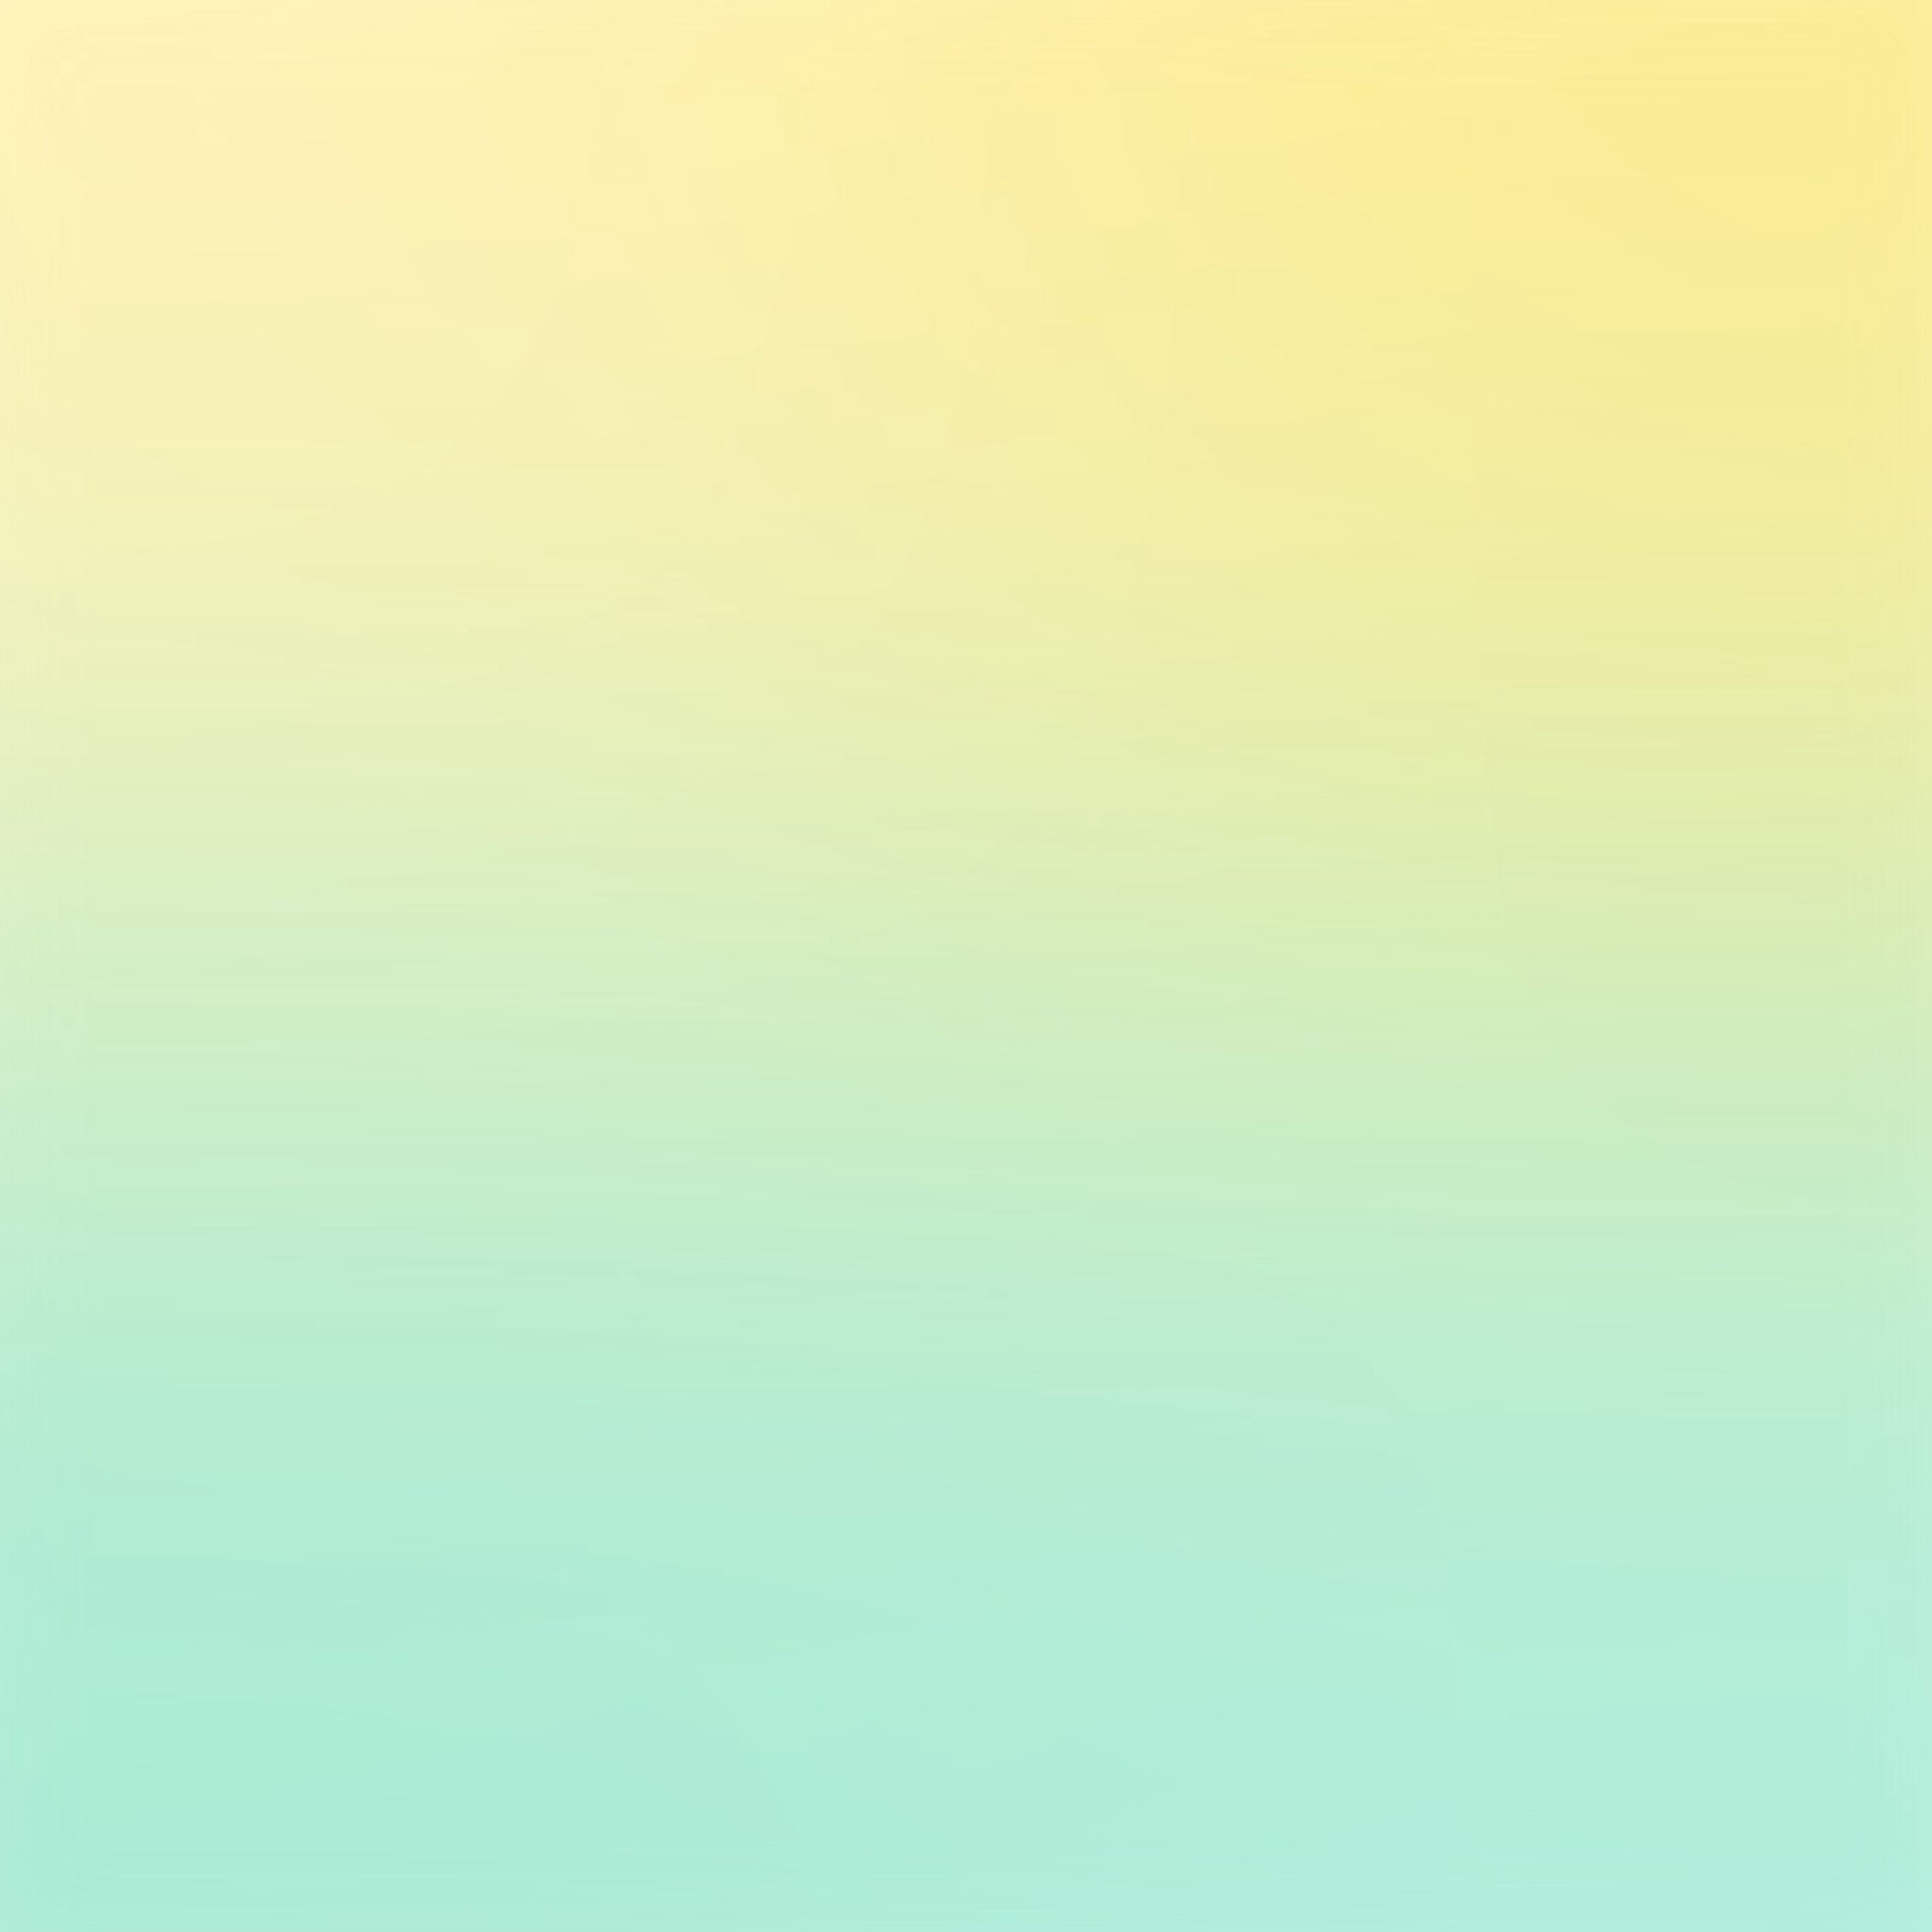 Yellow Green Pastel Blur Gradation IPad Pro Wallpaper